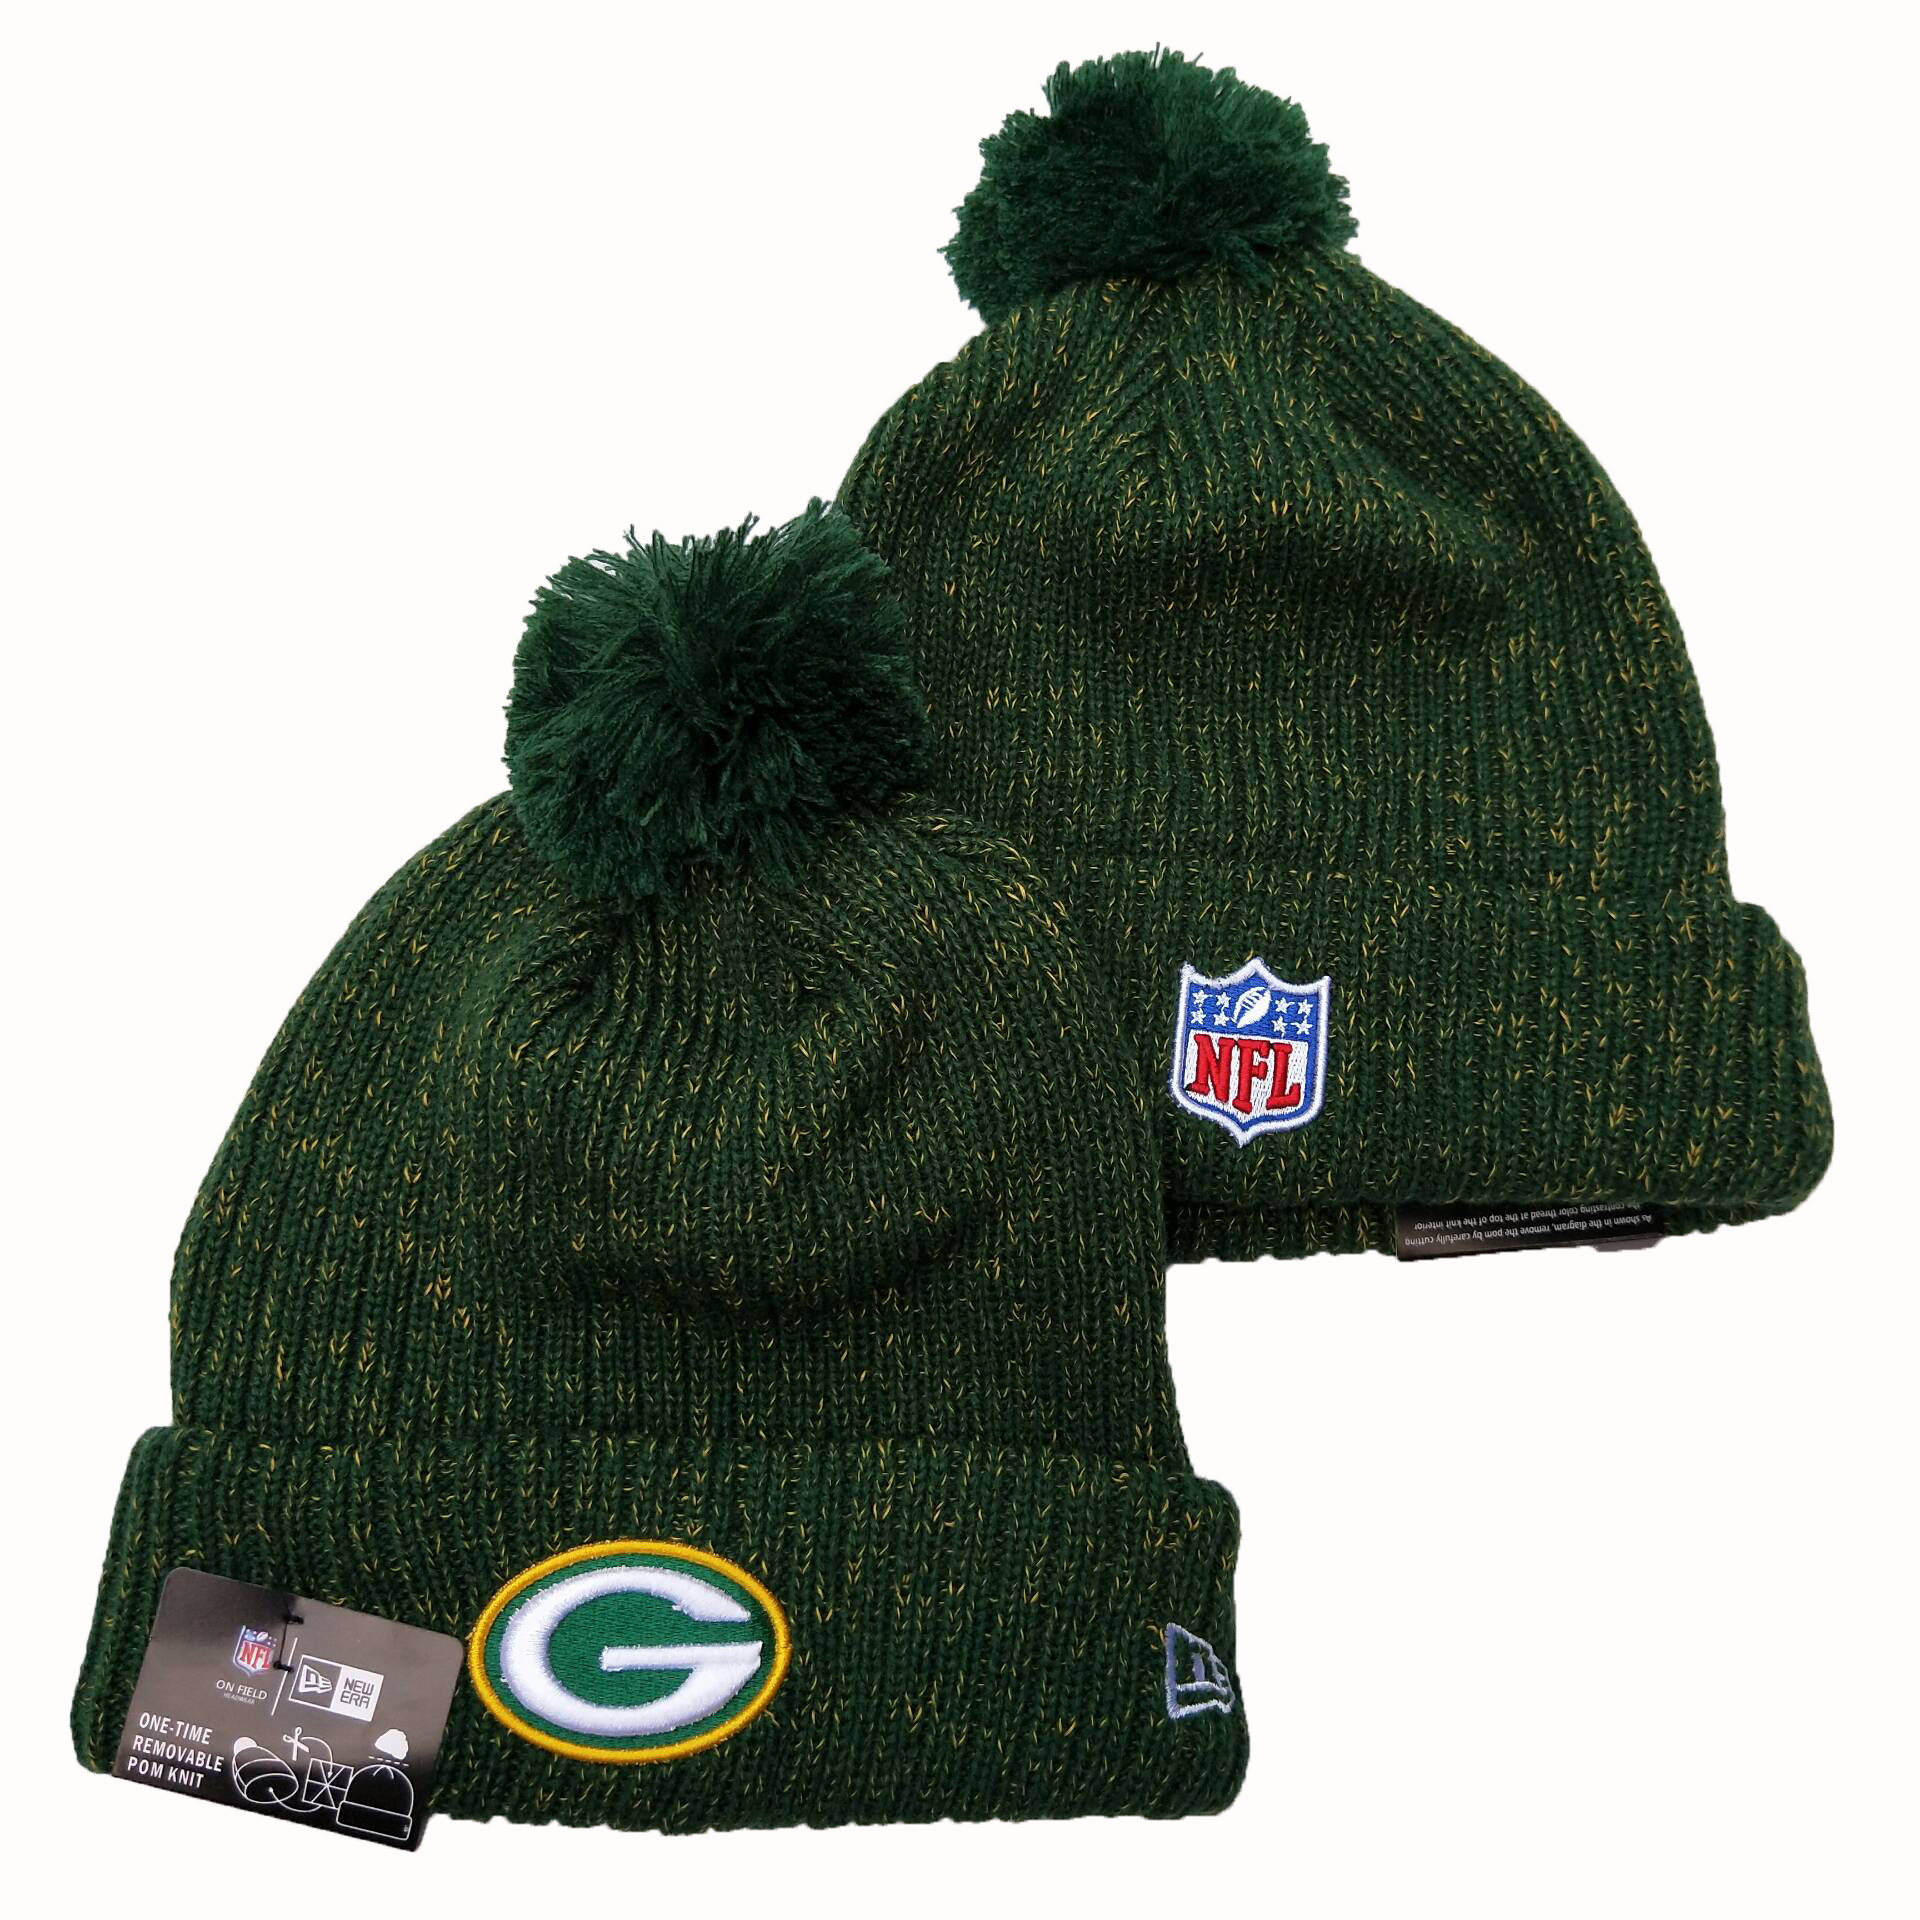 NFL Green Bay Packers New Era 2019 Knit Hats 053